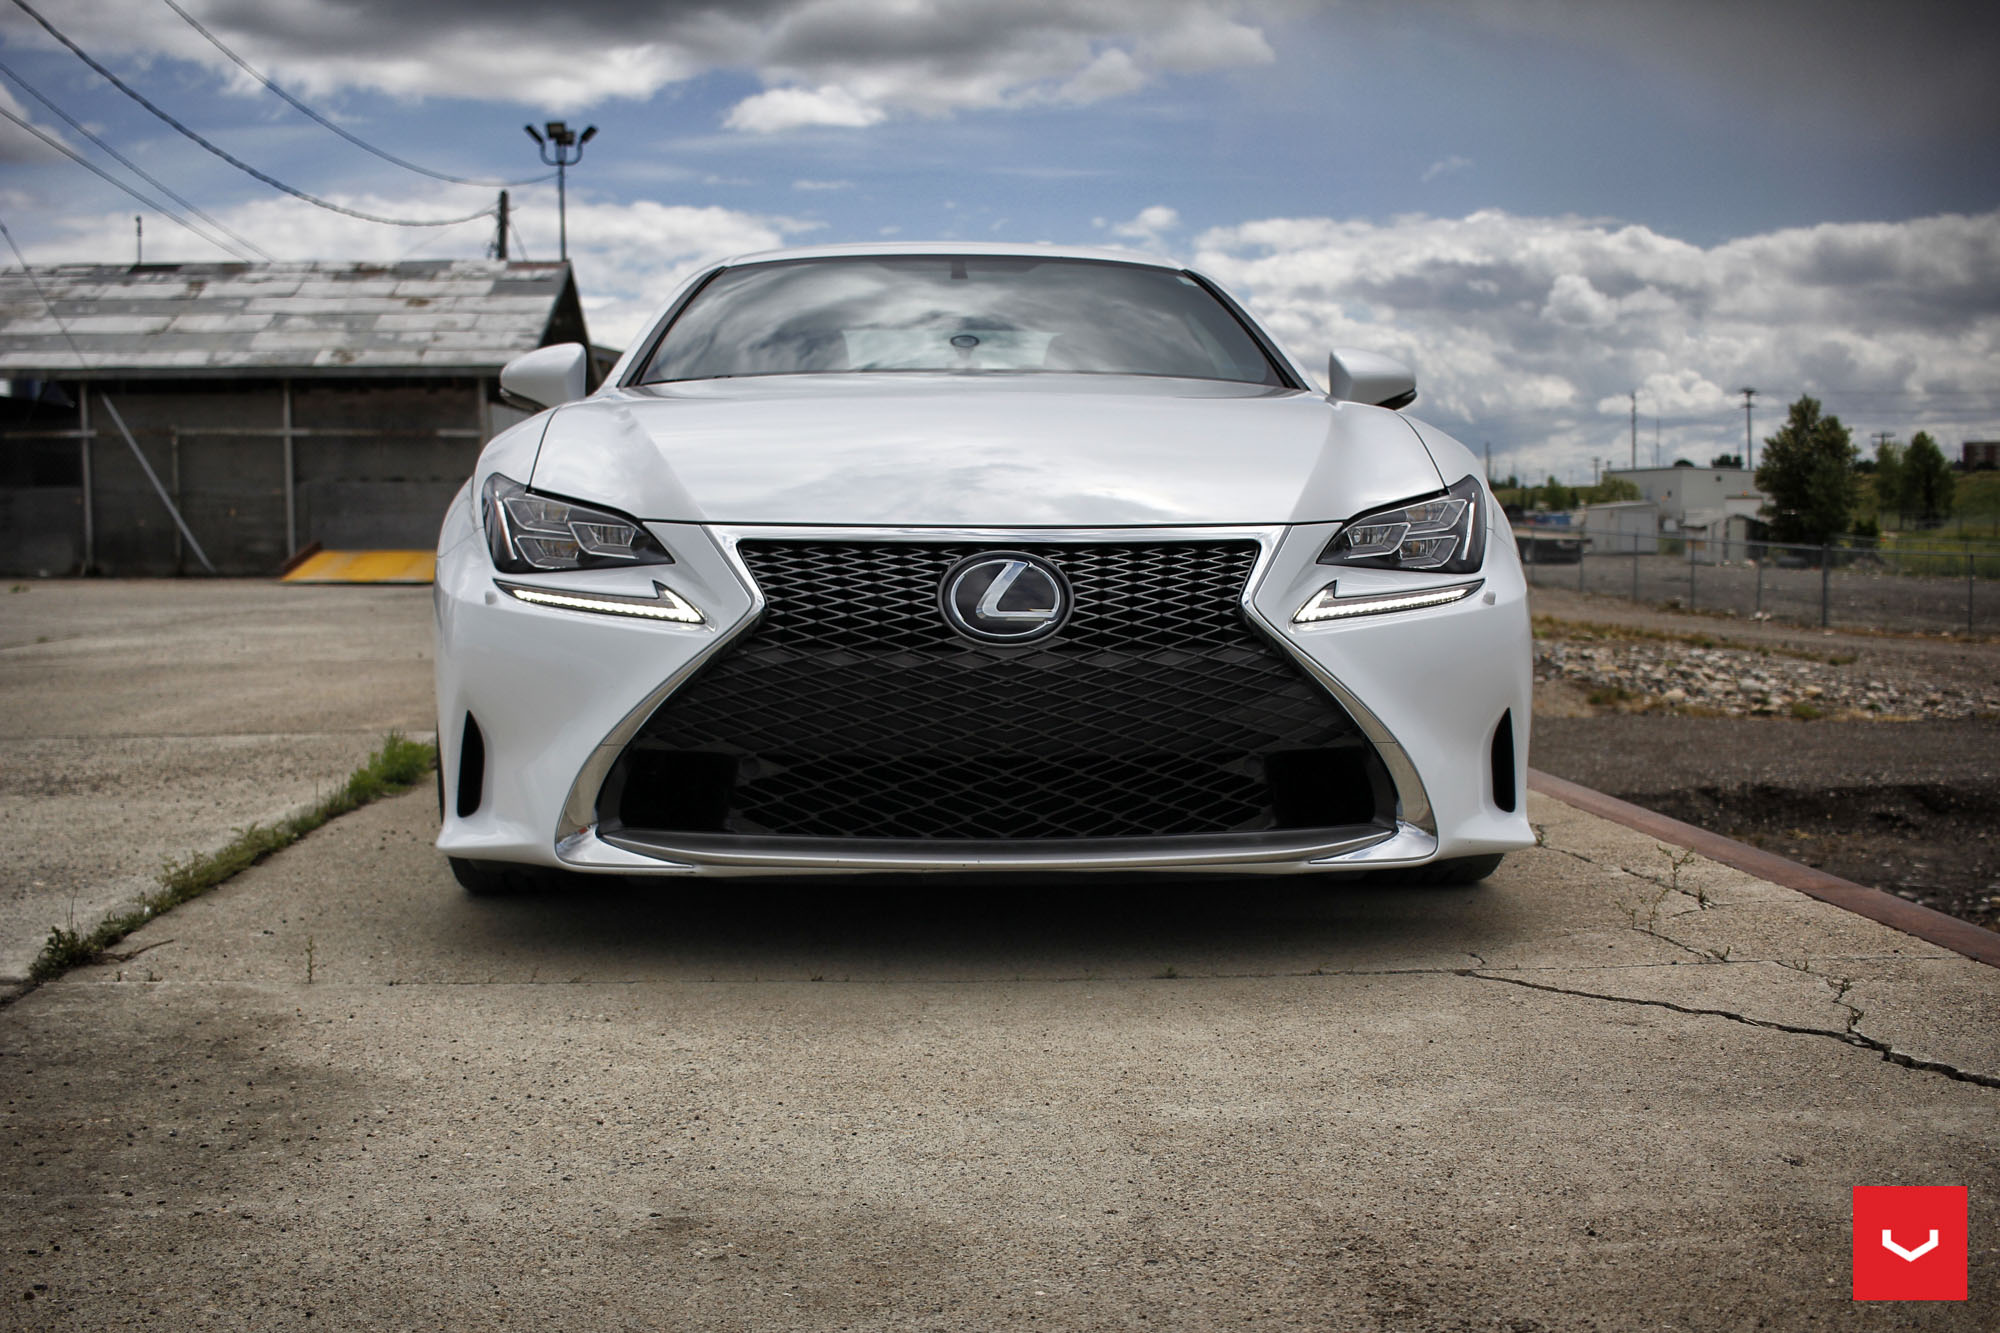 Lexus F Sport >> White Lexus RCF on Vossen Wheels Has the Look of a Cult Car - autoevolution